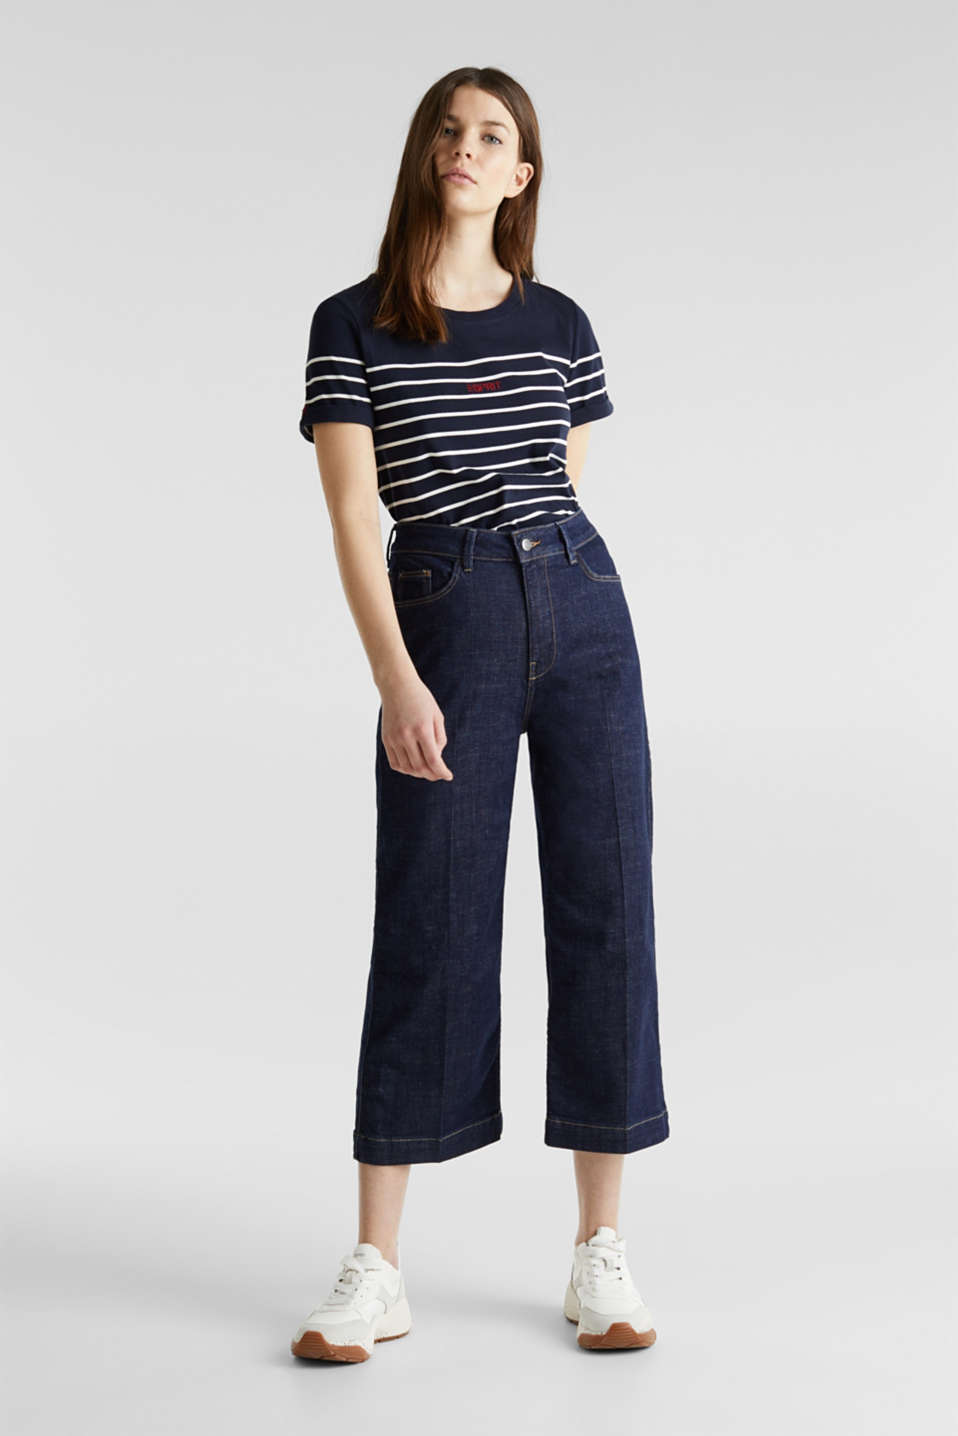 Striped top with embroidery, 100% cotton, NAVY, detail image number 1